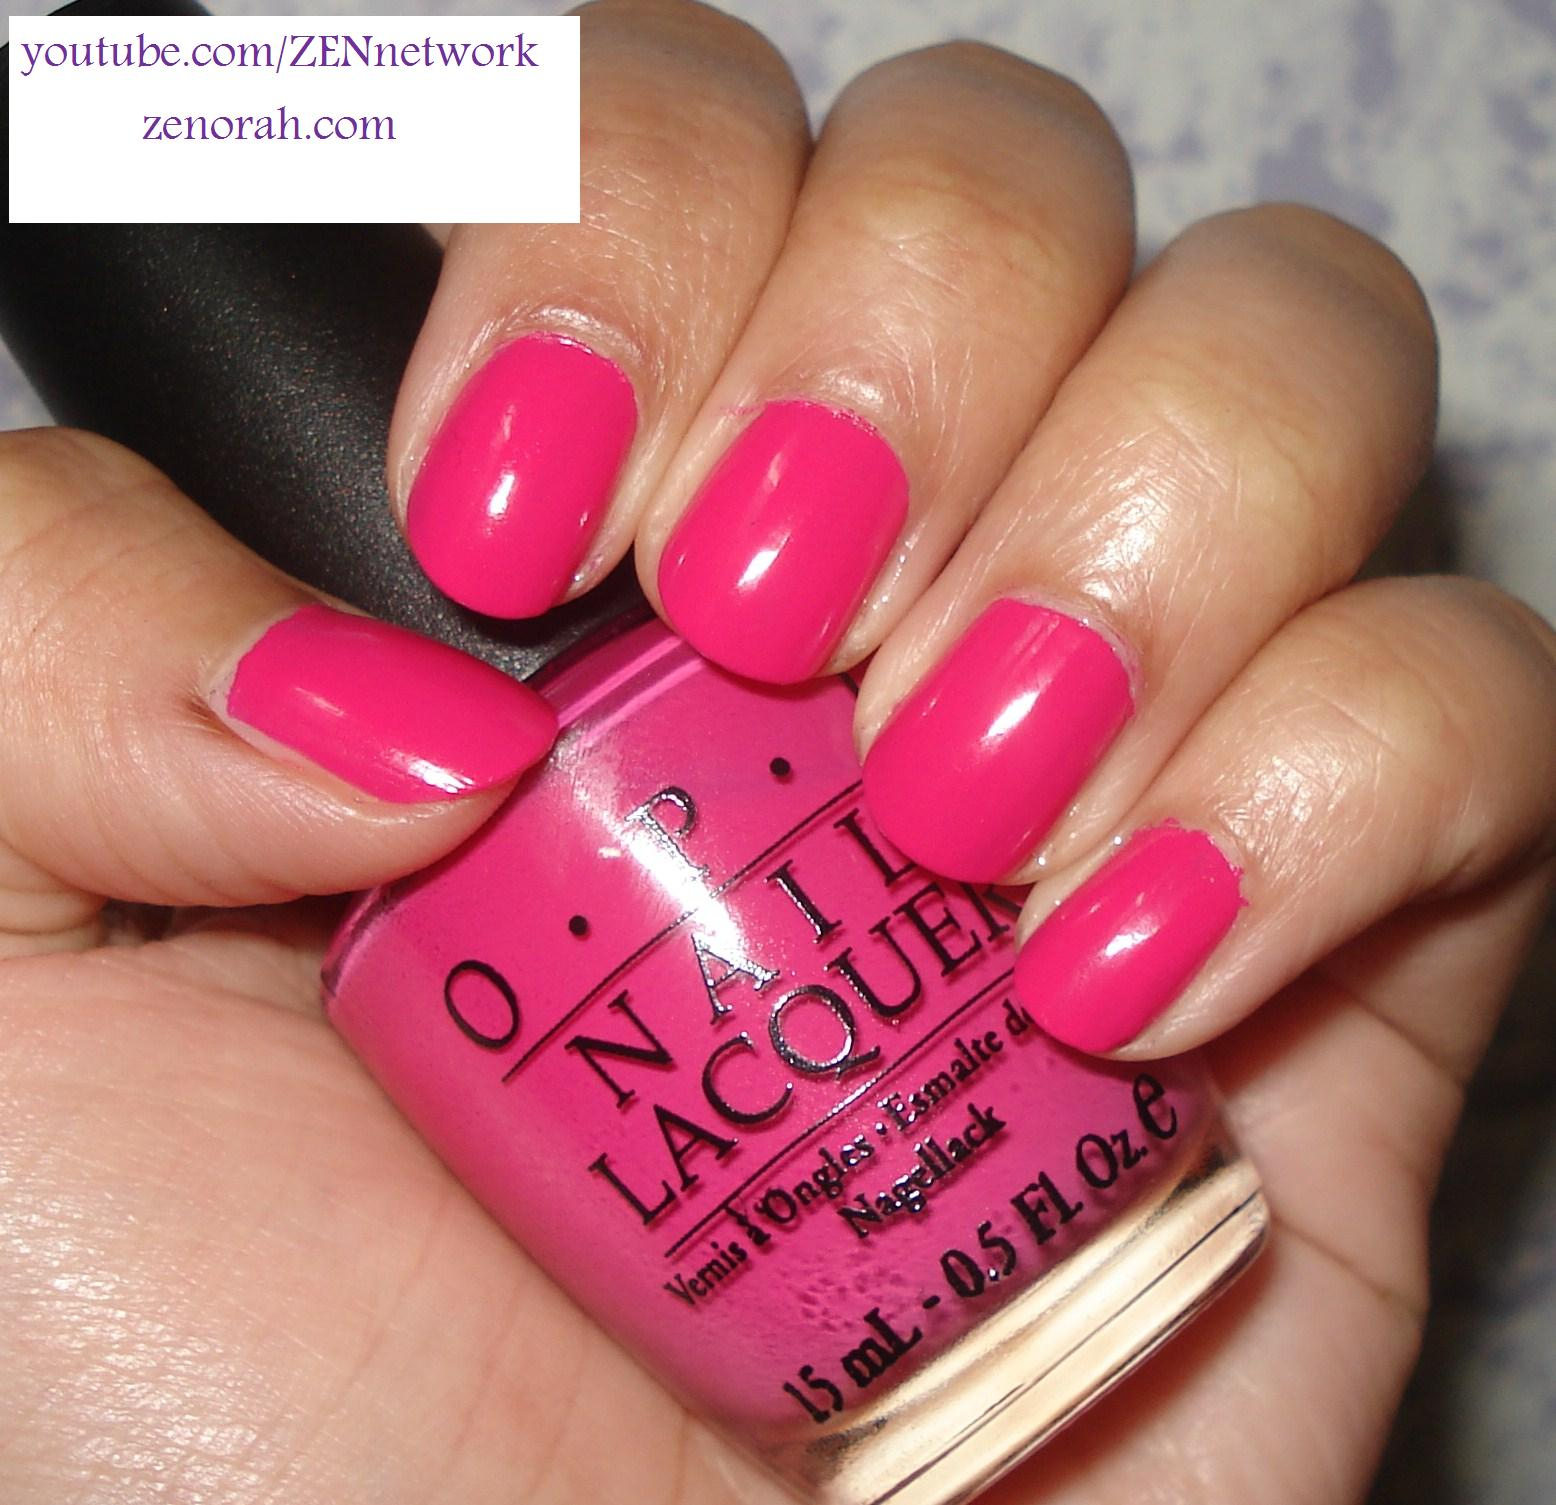 Think, that Opi nail polish pink collection confirm. was